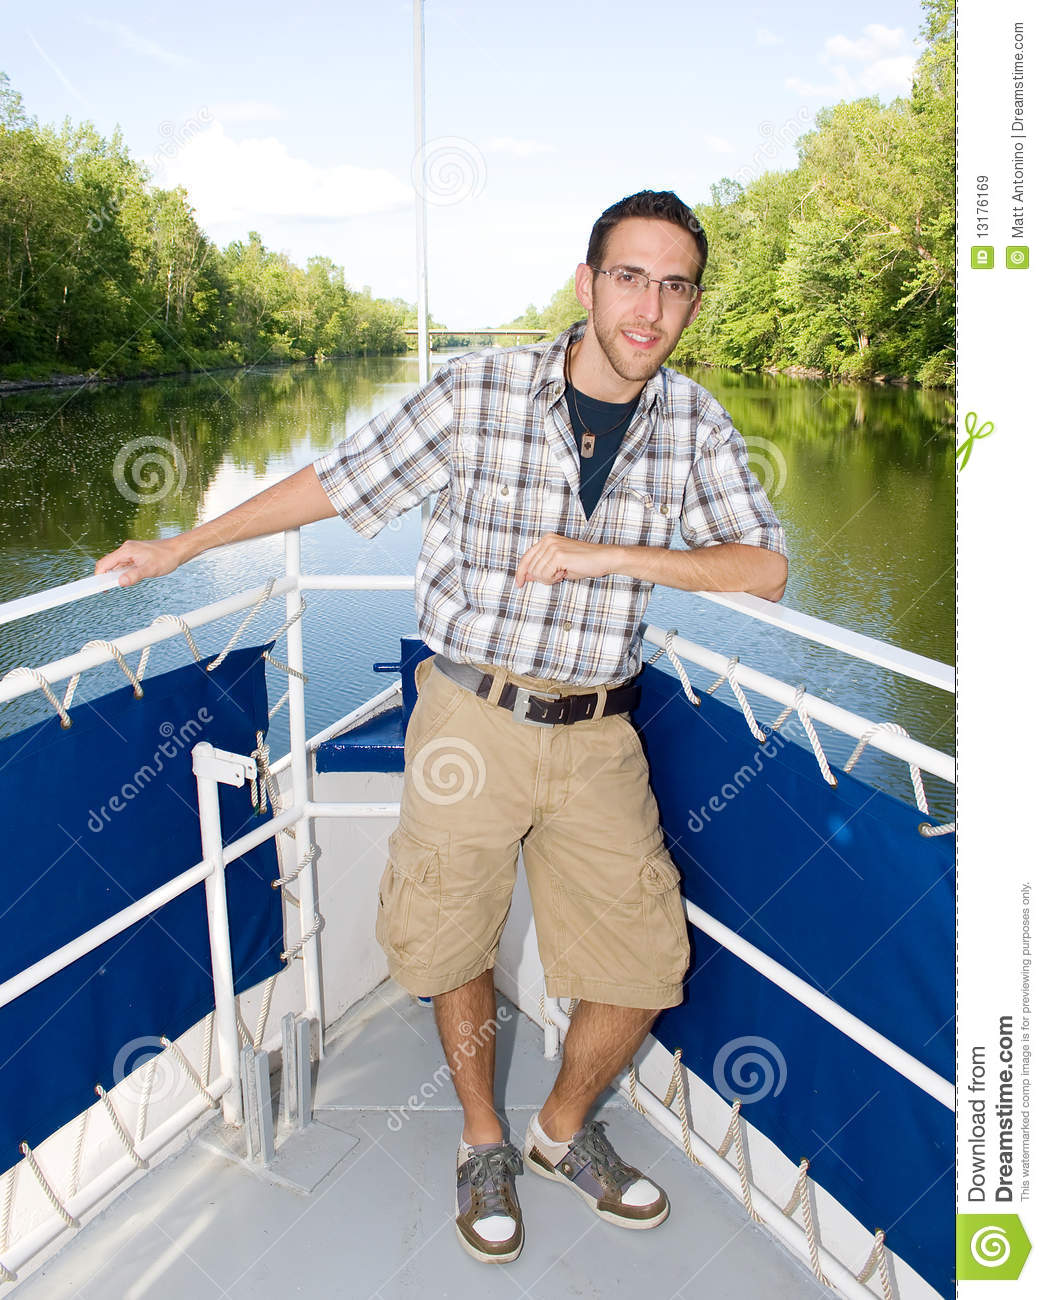 Tour guide man stock image. Image of orate, daytime, kind ...